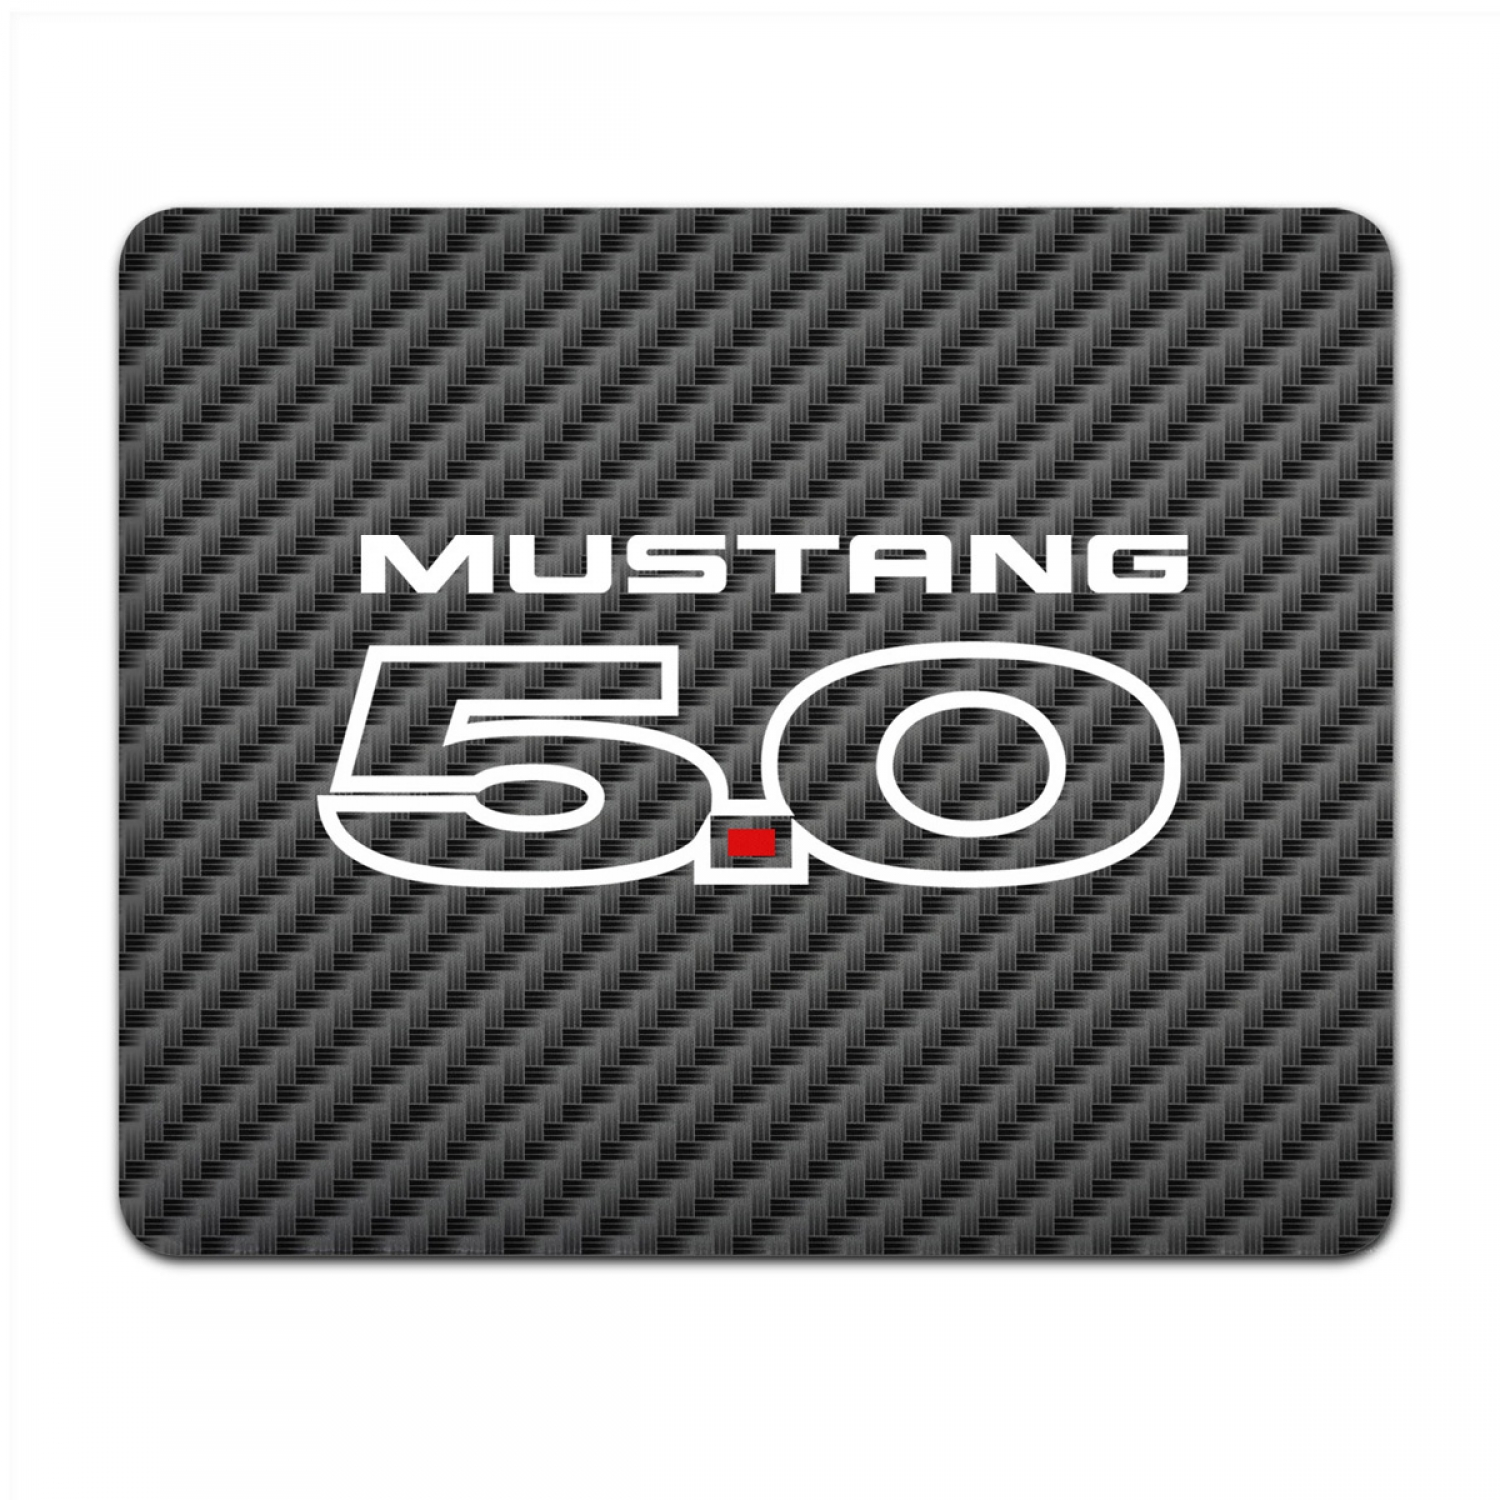 Ford Mustang 5.0 Black Carbon Fiber Texture Graphic PC Mouse Pad